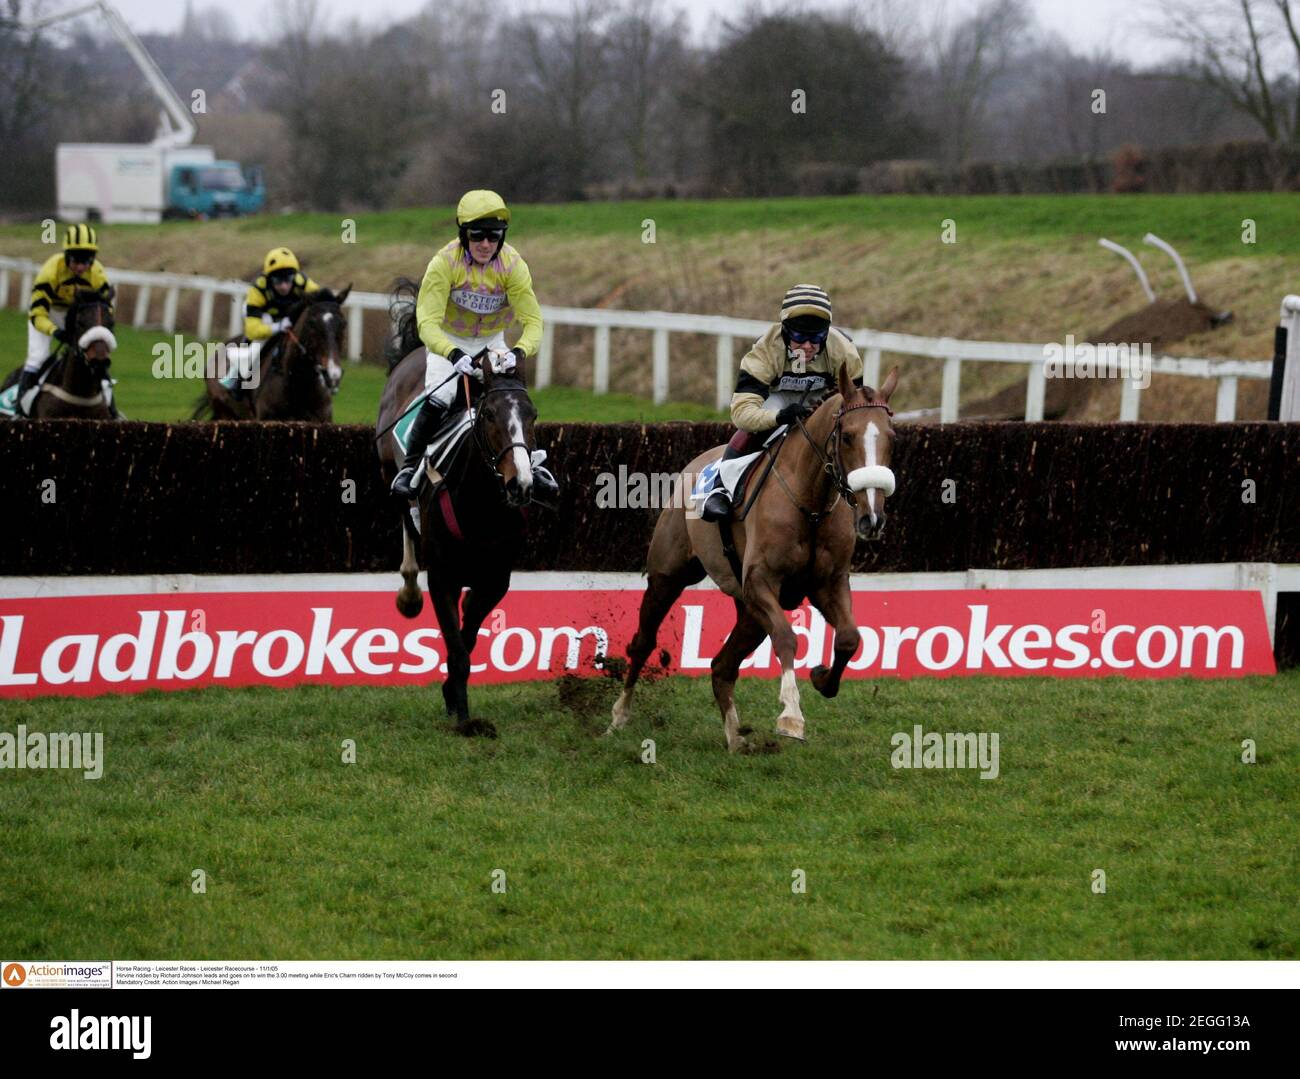 Horse Racing - Leicester Races - Leicester Racecourse - 11/1/05  Hirvine ridden by Richard Johnson leads and goes on to win the 3.00 meeting while Eric's Charm ridden by Tony McCoy comes in second   Mandatory Credit: Action Images / Michael Regan Stock Photo